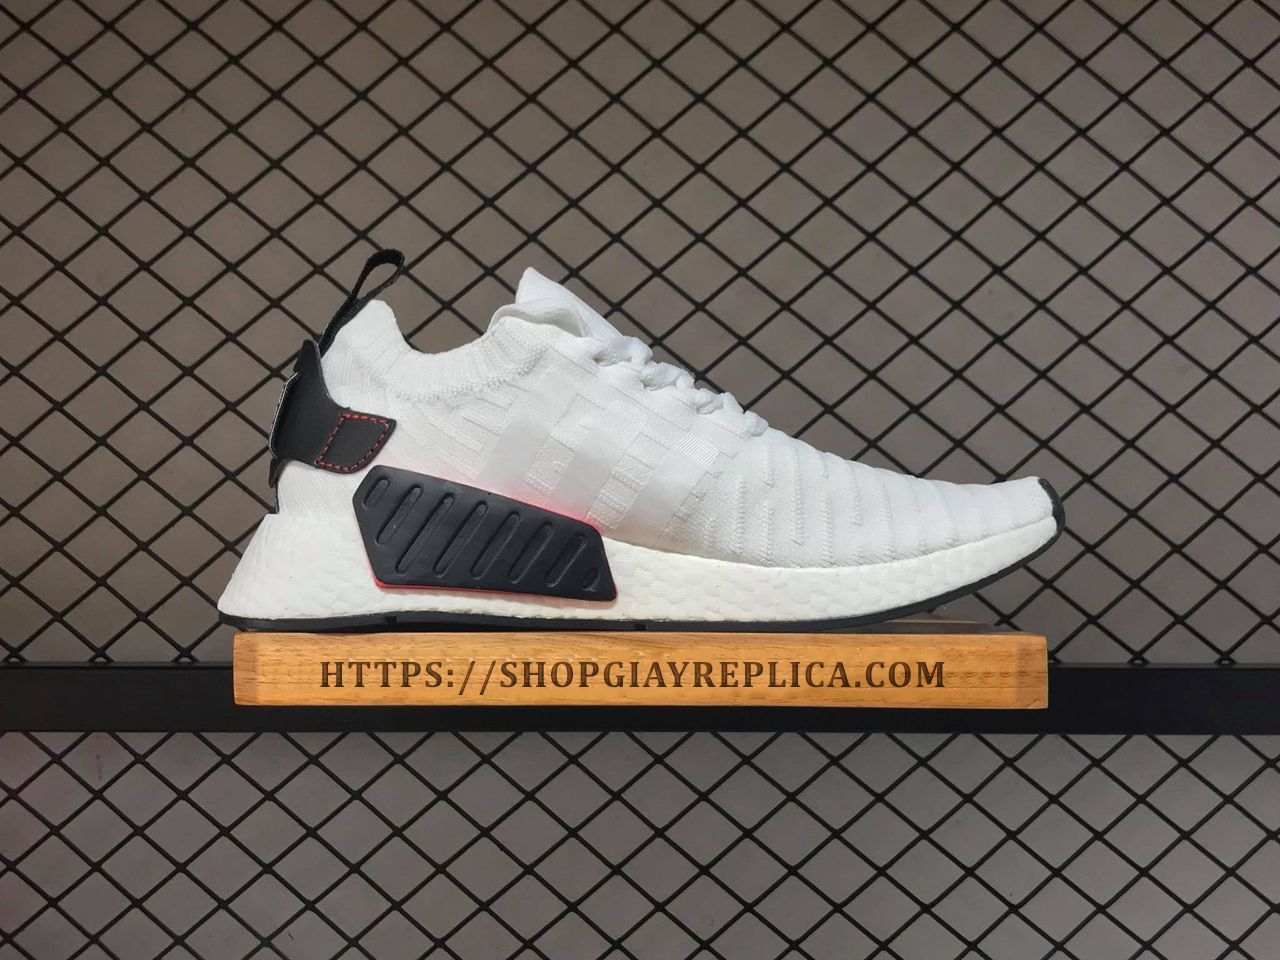 72454ae2dbb4d Giày Adidas NMD R2 Core White Black replica 1 1 - Shop giày Replica™